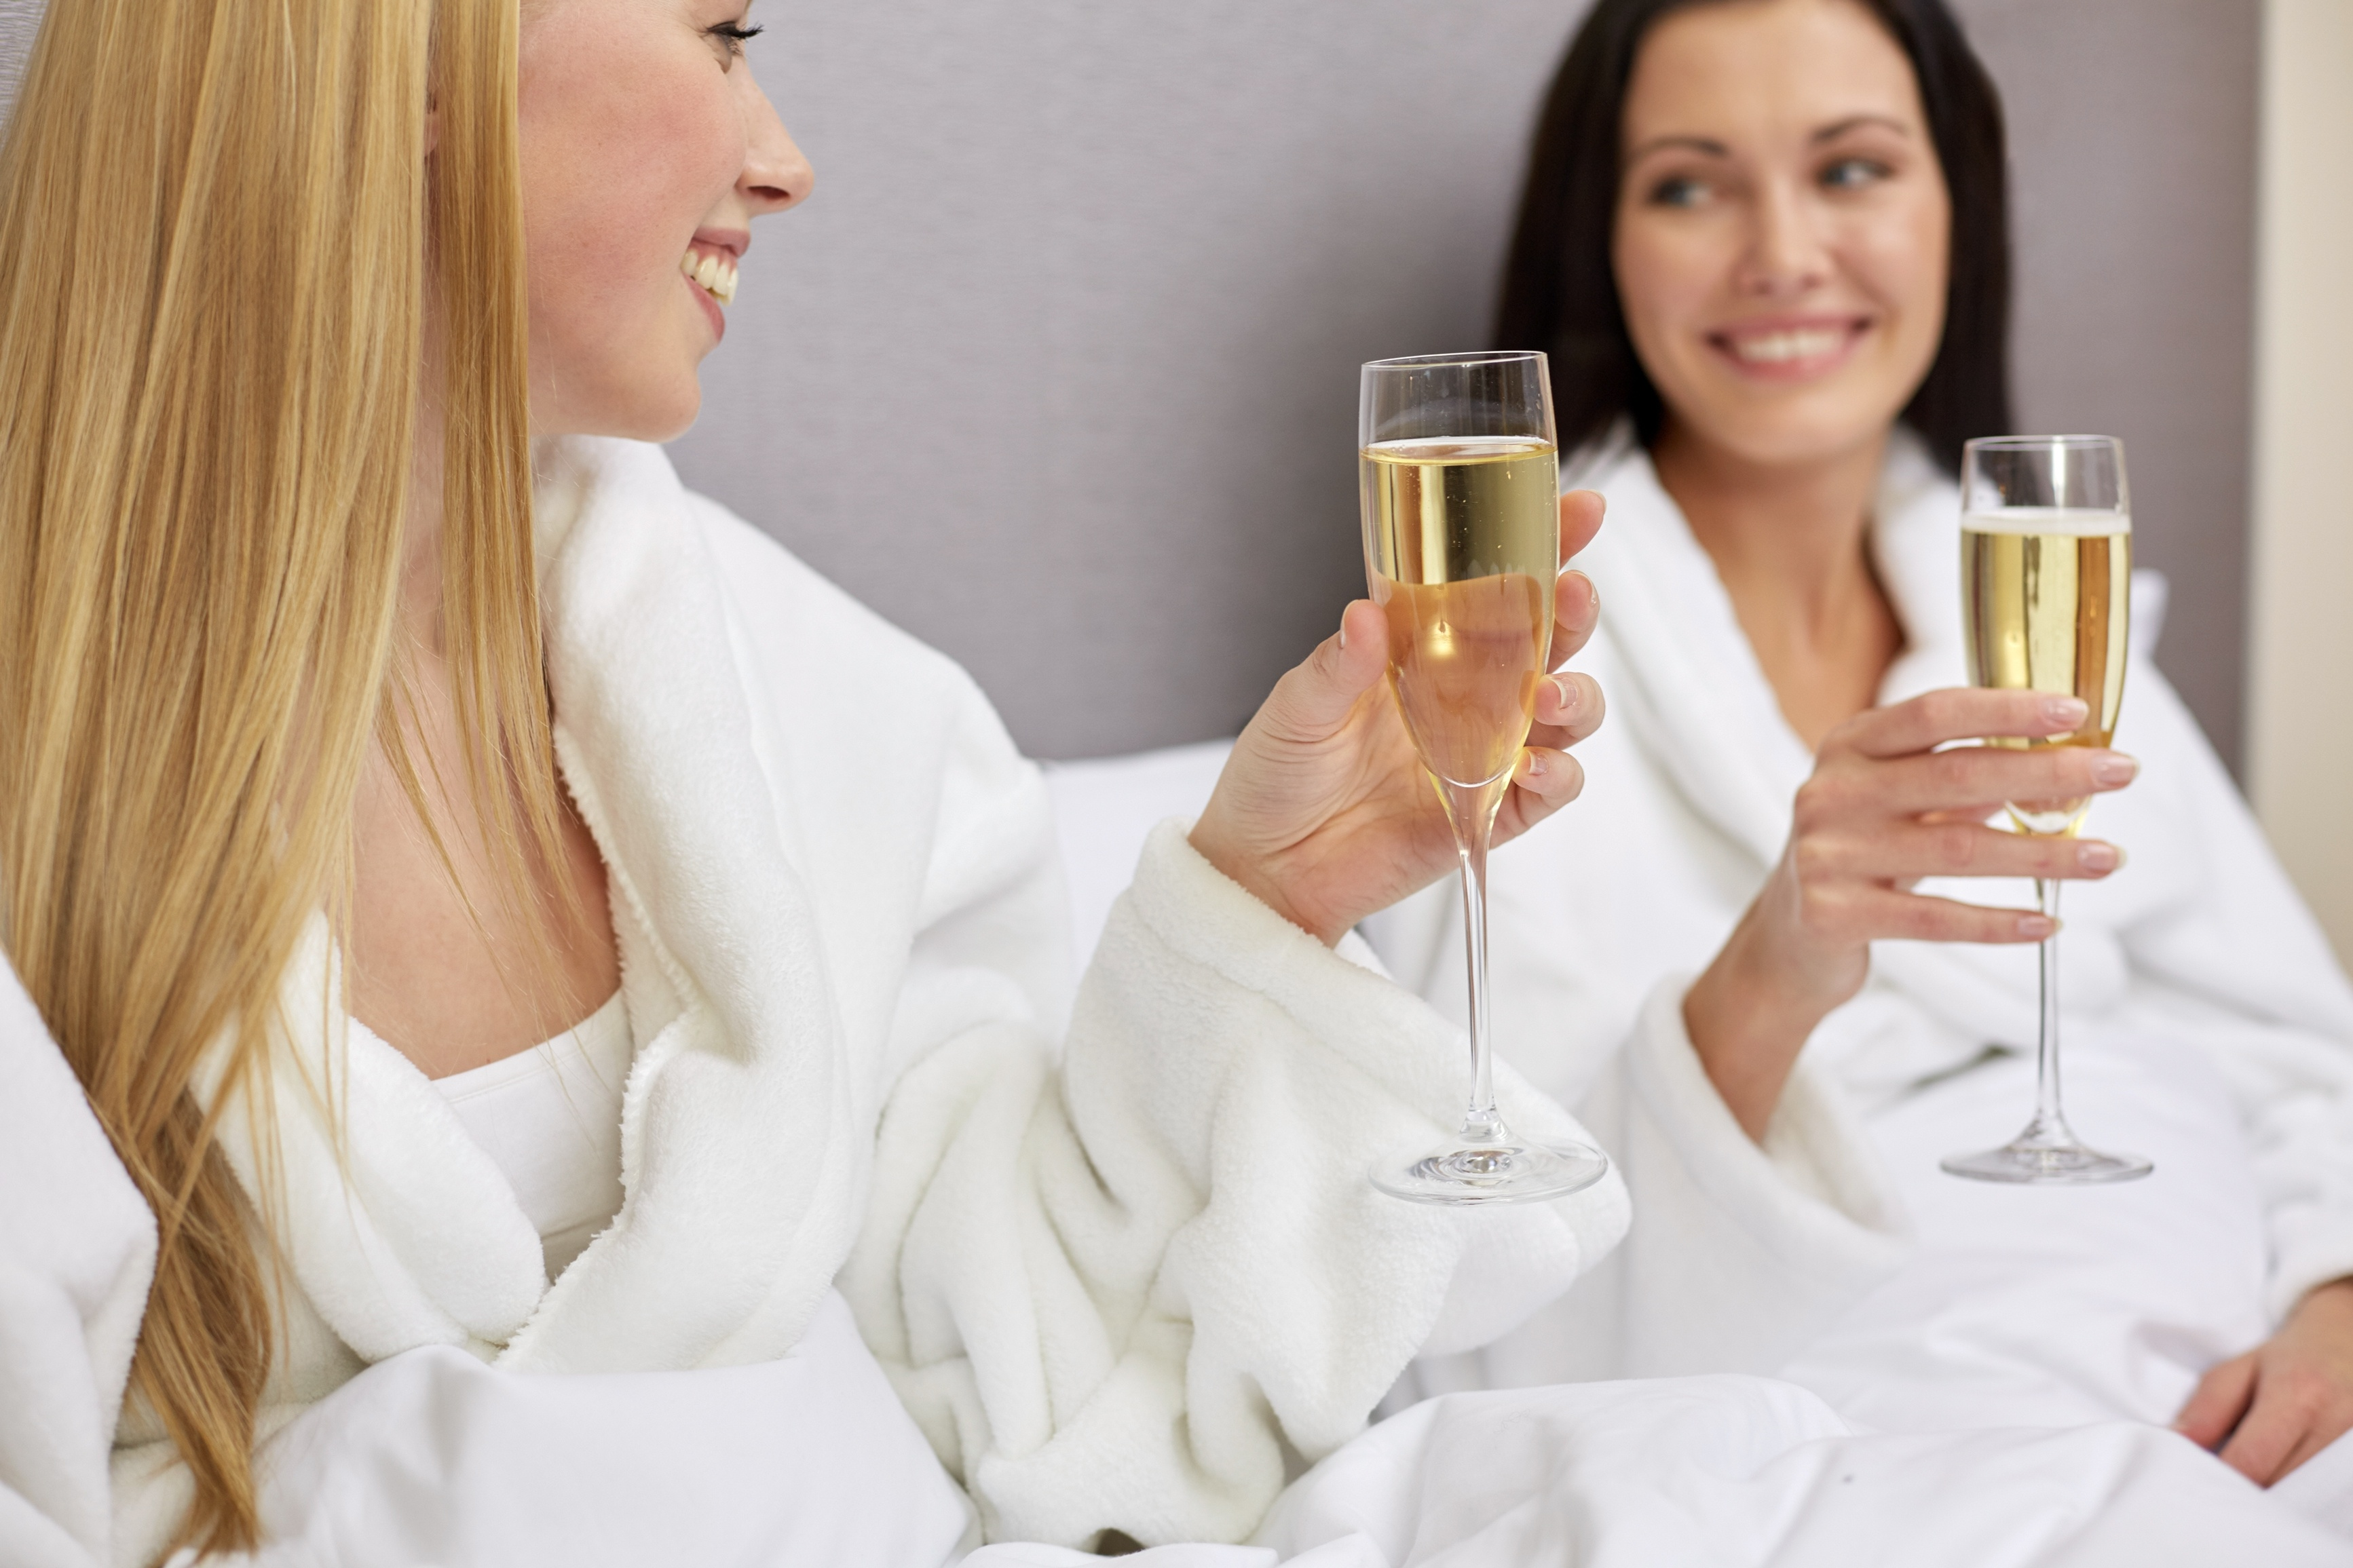 spa-party-champagne.jpg